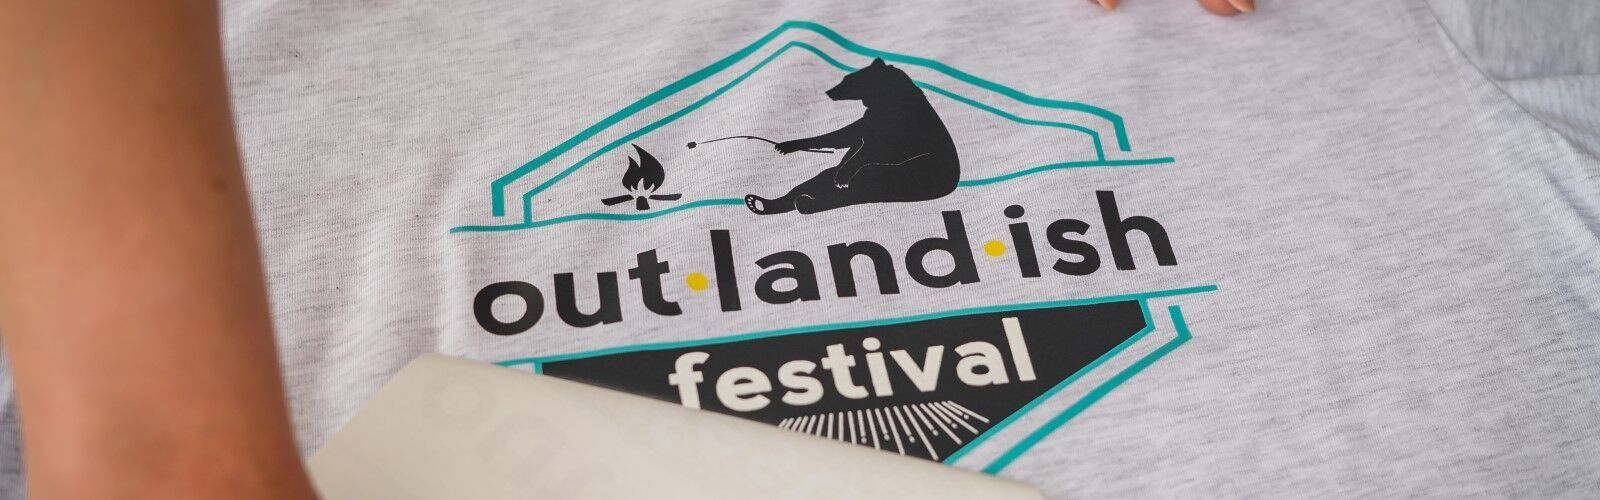 out·land·ish festival t-shirts being printed by Red Threads <span class='image-credits'>Ben Tierney</span>